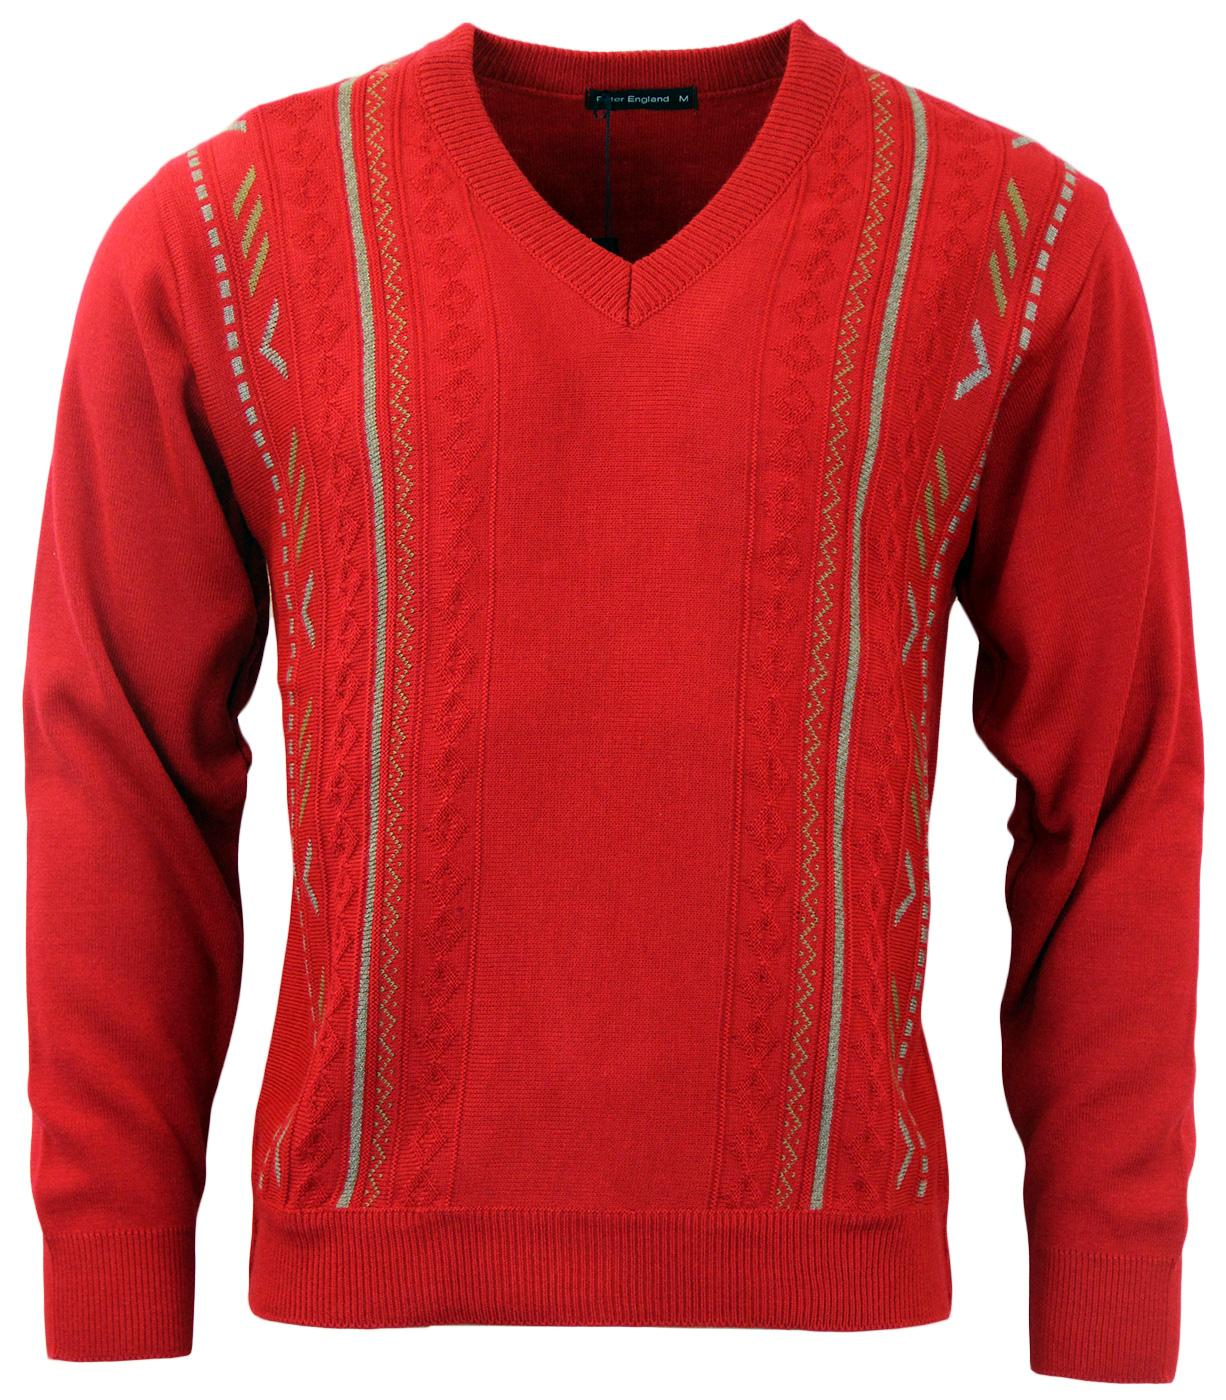 PETER ENGLAND Retro Geo Pattern Knit Jumper